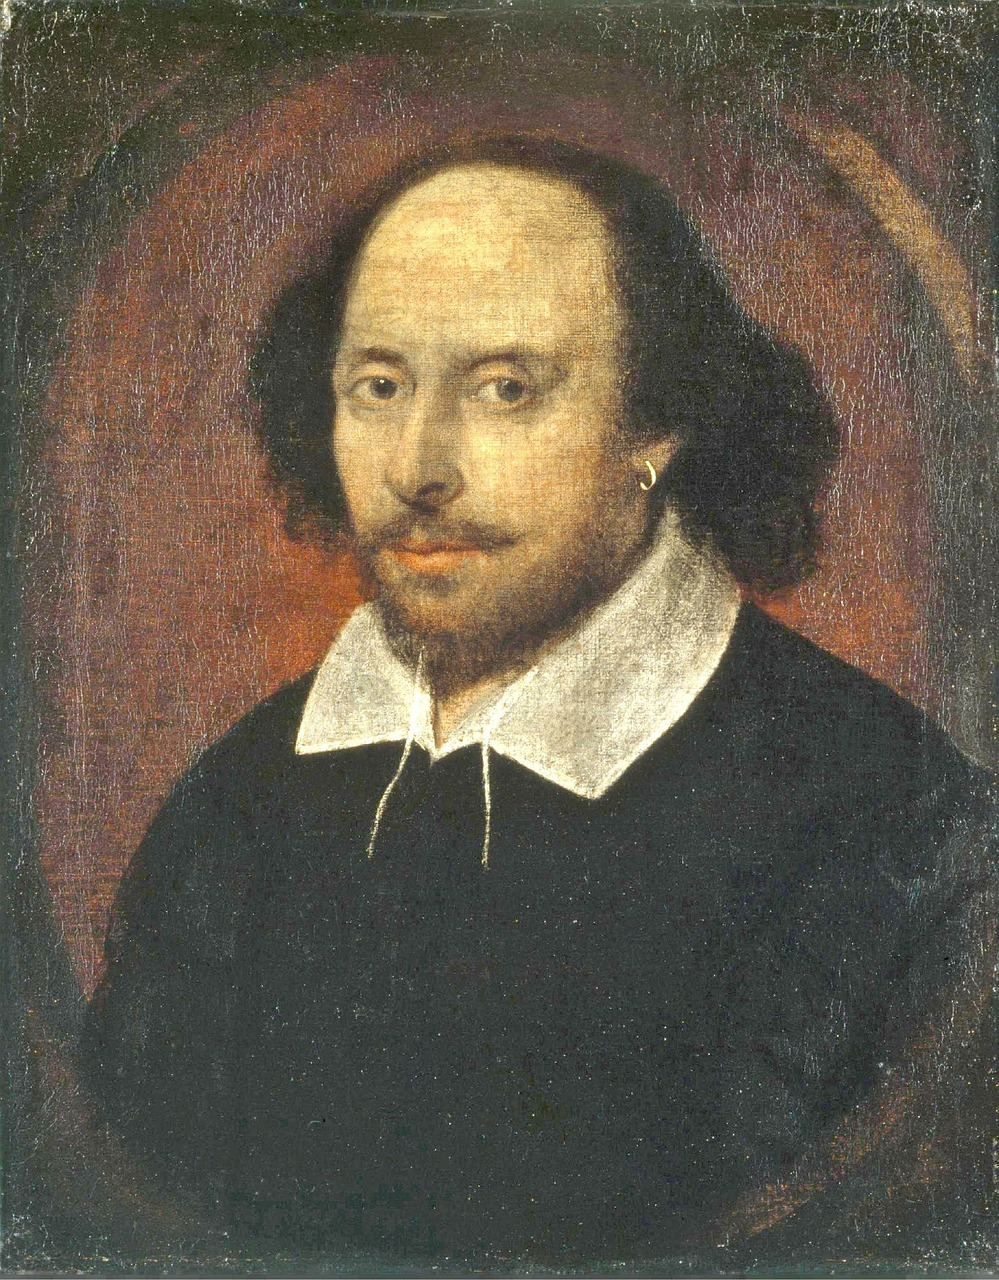 shakespeare,poet,writer,author,oil painting,portrait,man,1610,canvas,artwork,bald head,free pictures, free photos, free images, royalty free, free illustrations, public domain